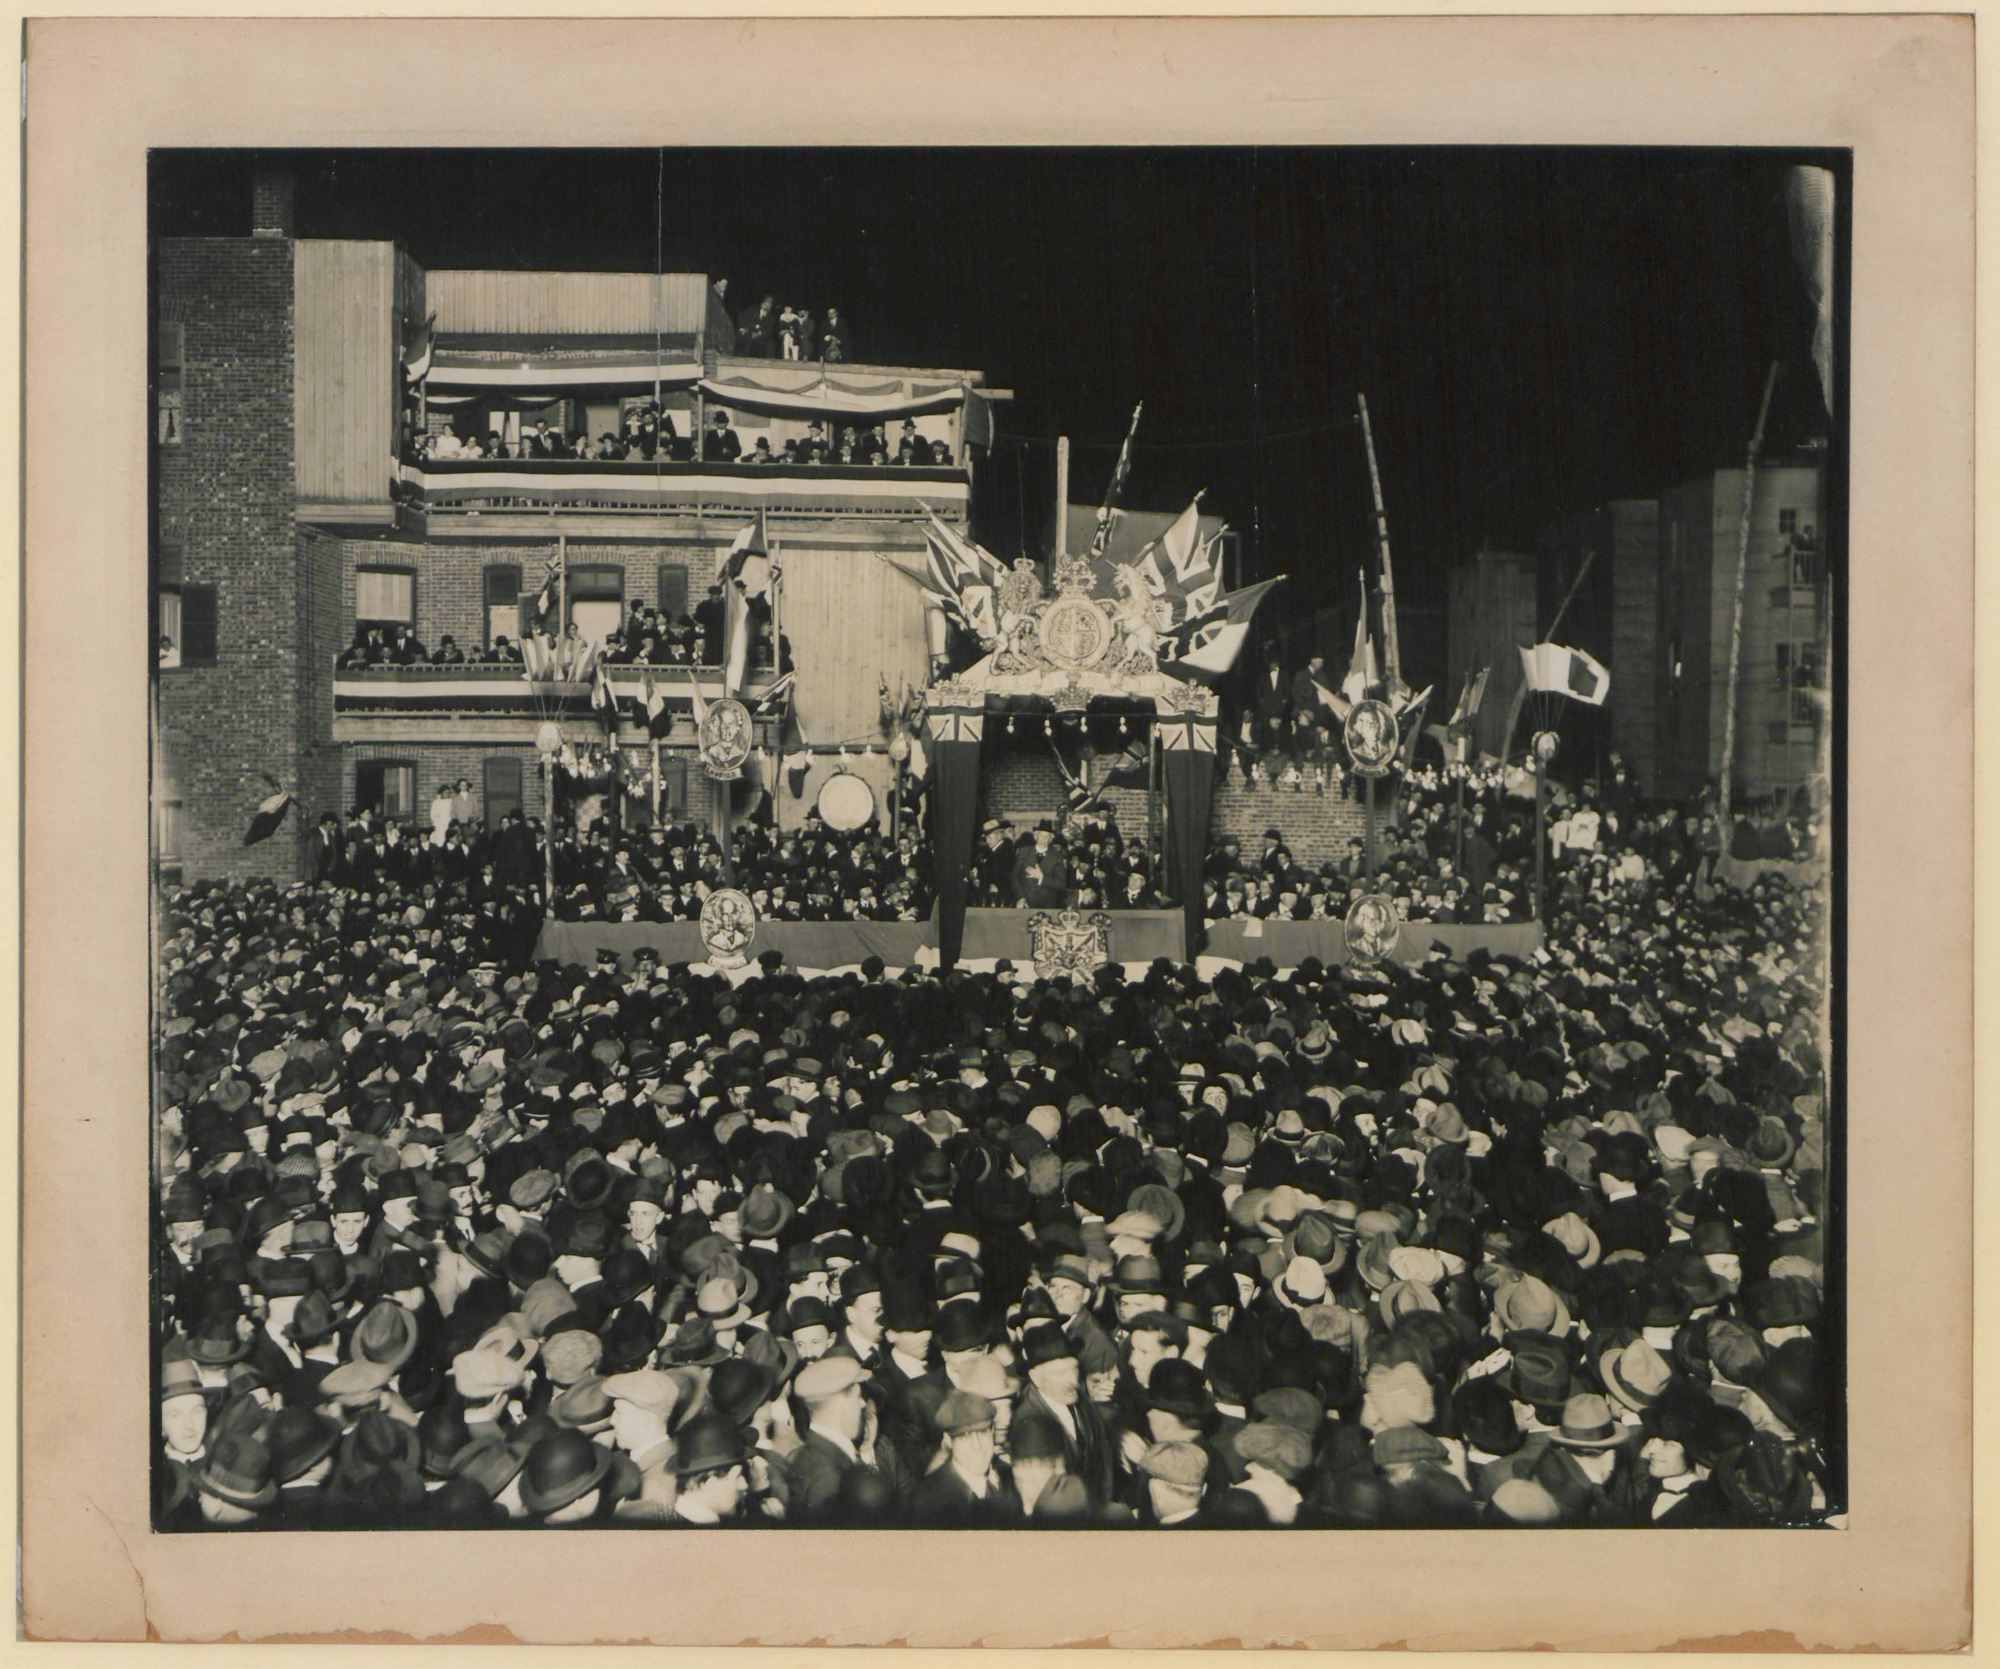 Photograph showing Wilfrid Laurier in Montreal, 1916. Laurier was Prime Minister of Canada from 1896-1911. As leader of the opposition, he supported Canada's participation in the war.